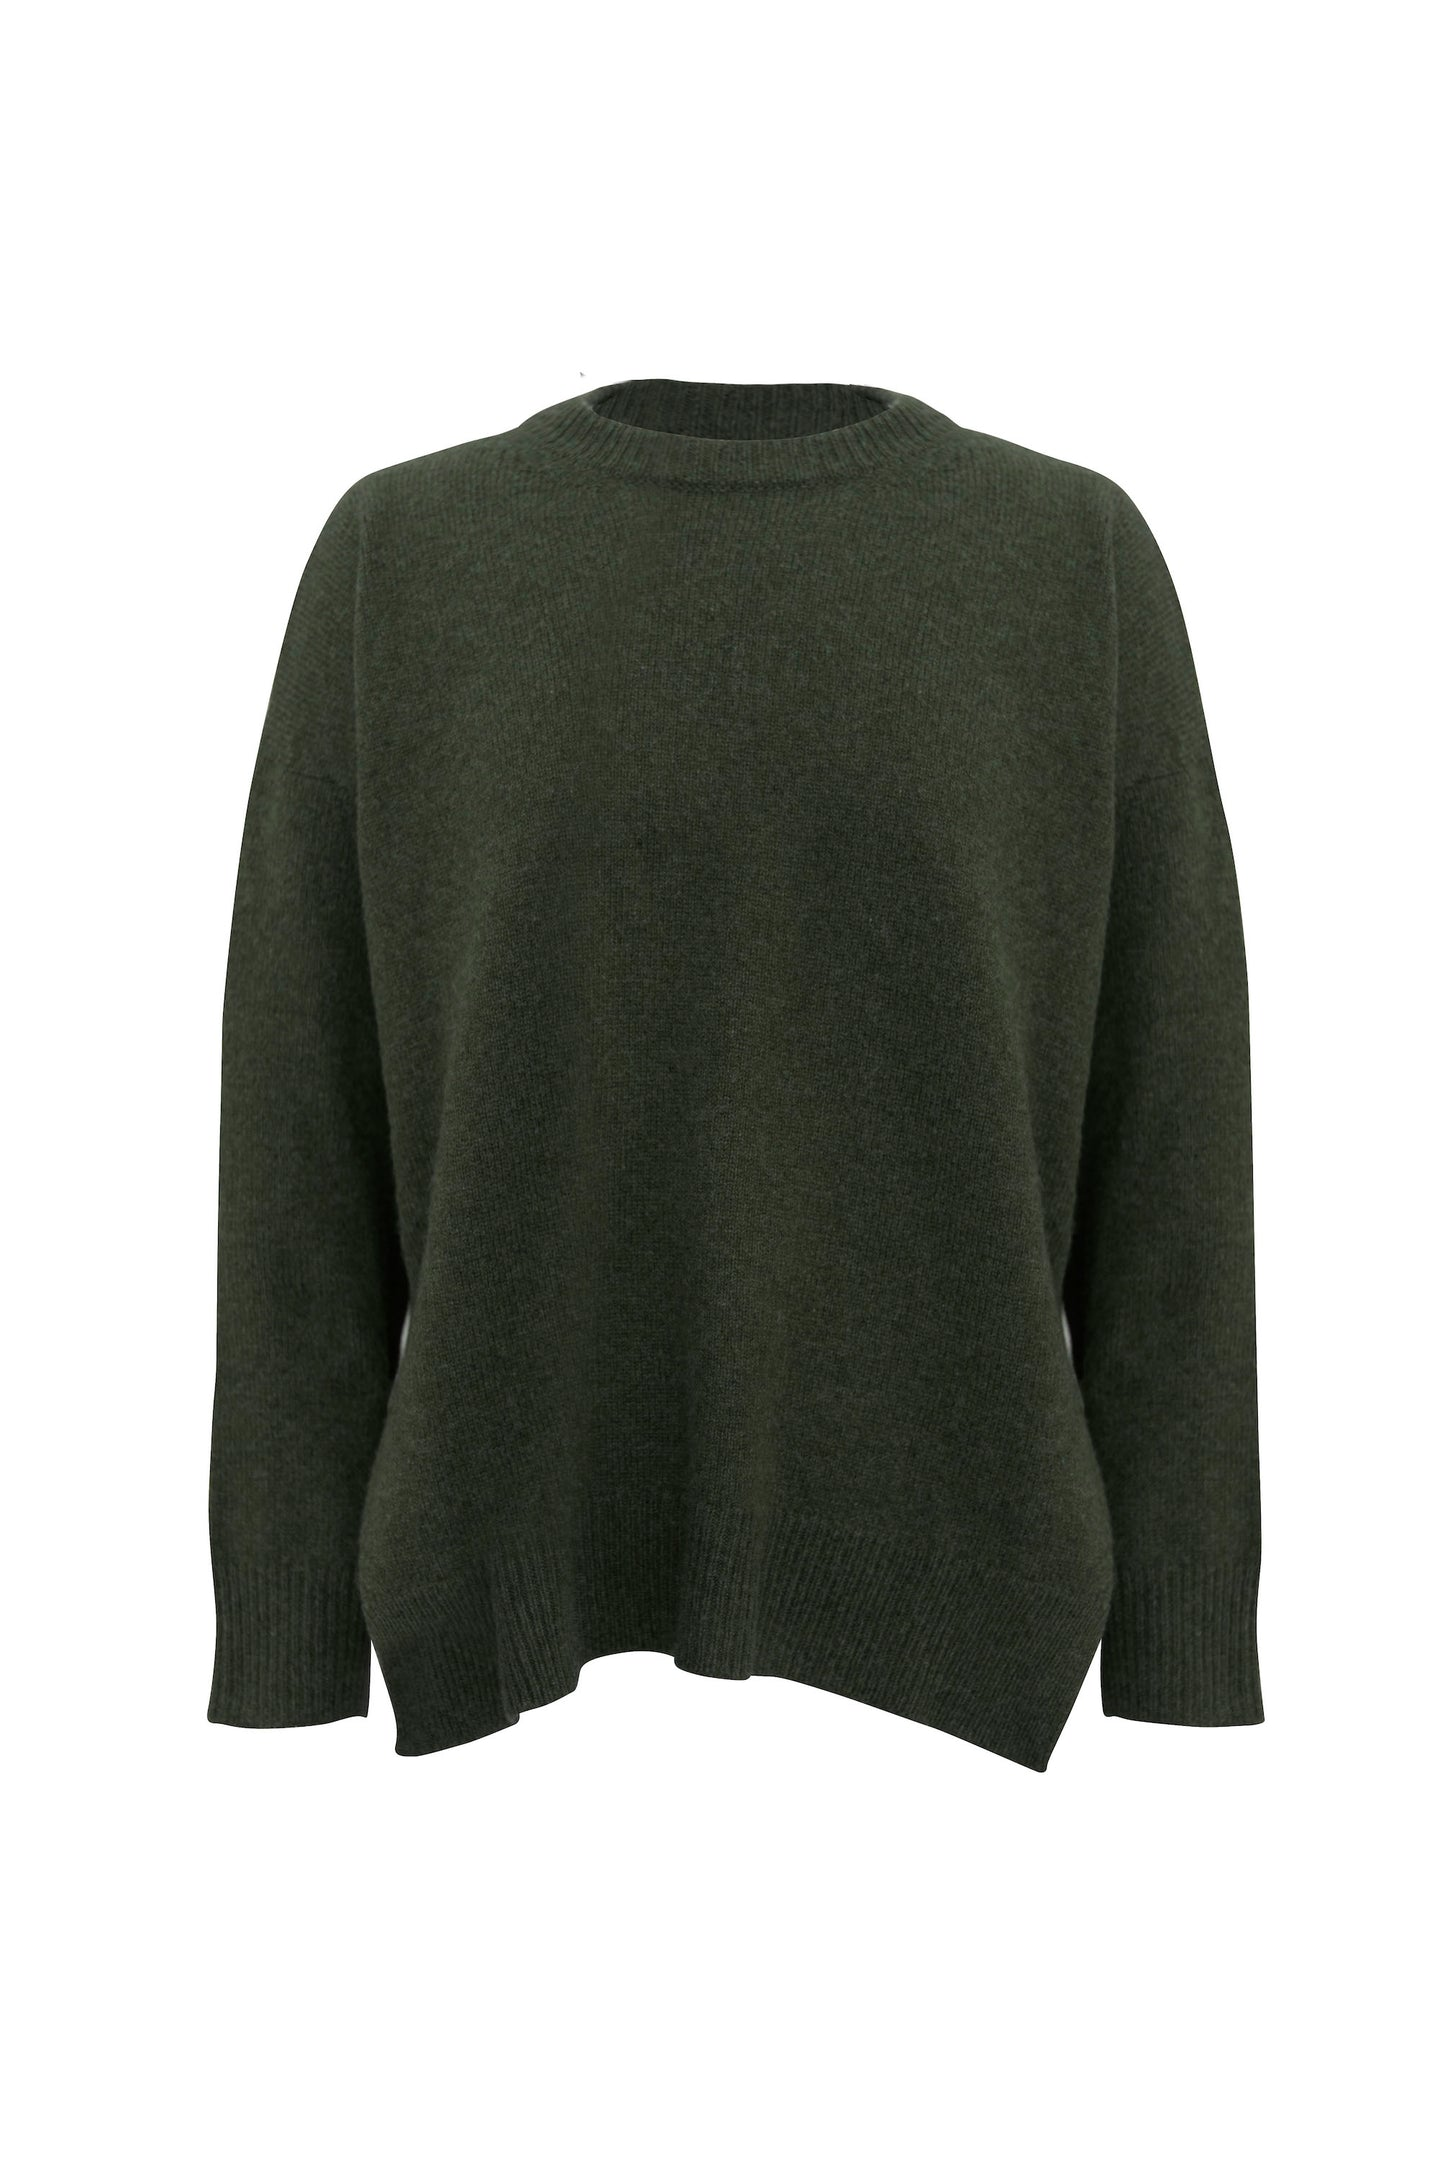 Dark Sage Farm Sweater